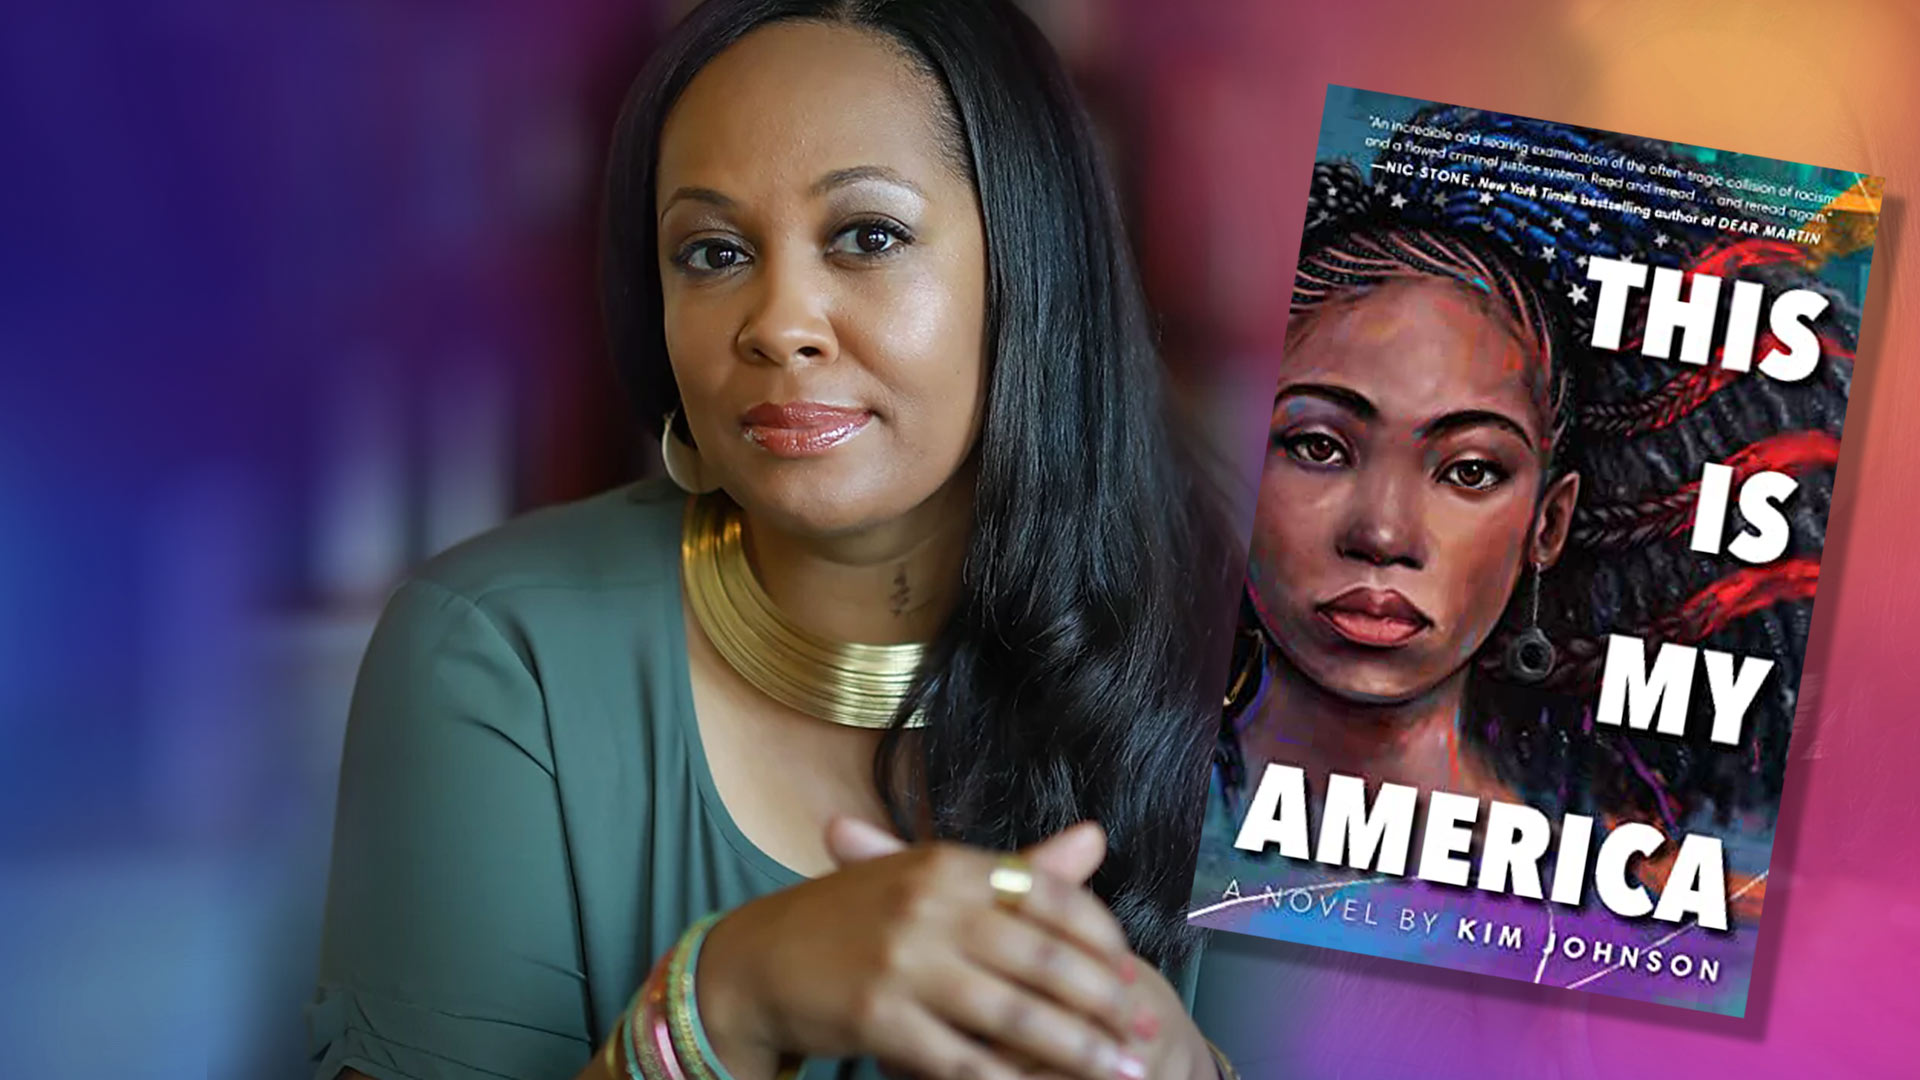 """Kim Johnson M.Ed. '03, author of new novel """"This Is My America,"""" hopes her book might be a call to action amid the movement for racial equity and against police brutality. (Collage by Stephanie S. Cordle; author image by JBoy Photography; book image by Random House; background image by iStock)"""